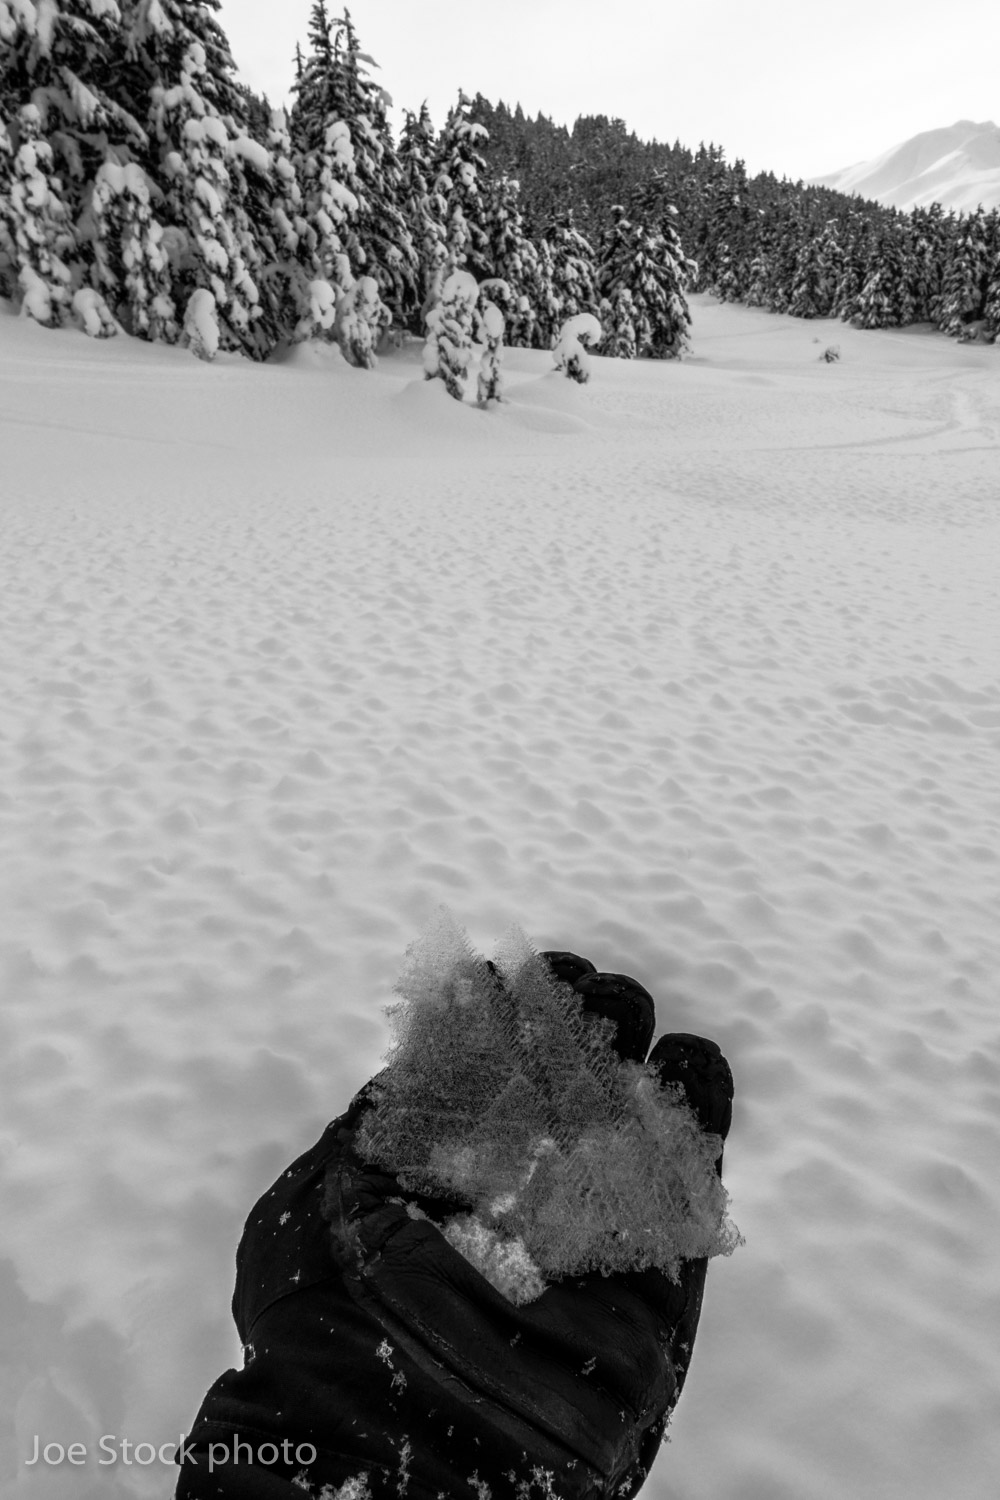 An inch of snow hides a meadow of massive surface hoar in the Tincan Meadows. This was during 10 days of avalanche training with the 212th Pararescue Squadron in Anchorage.